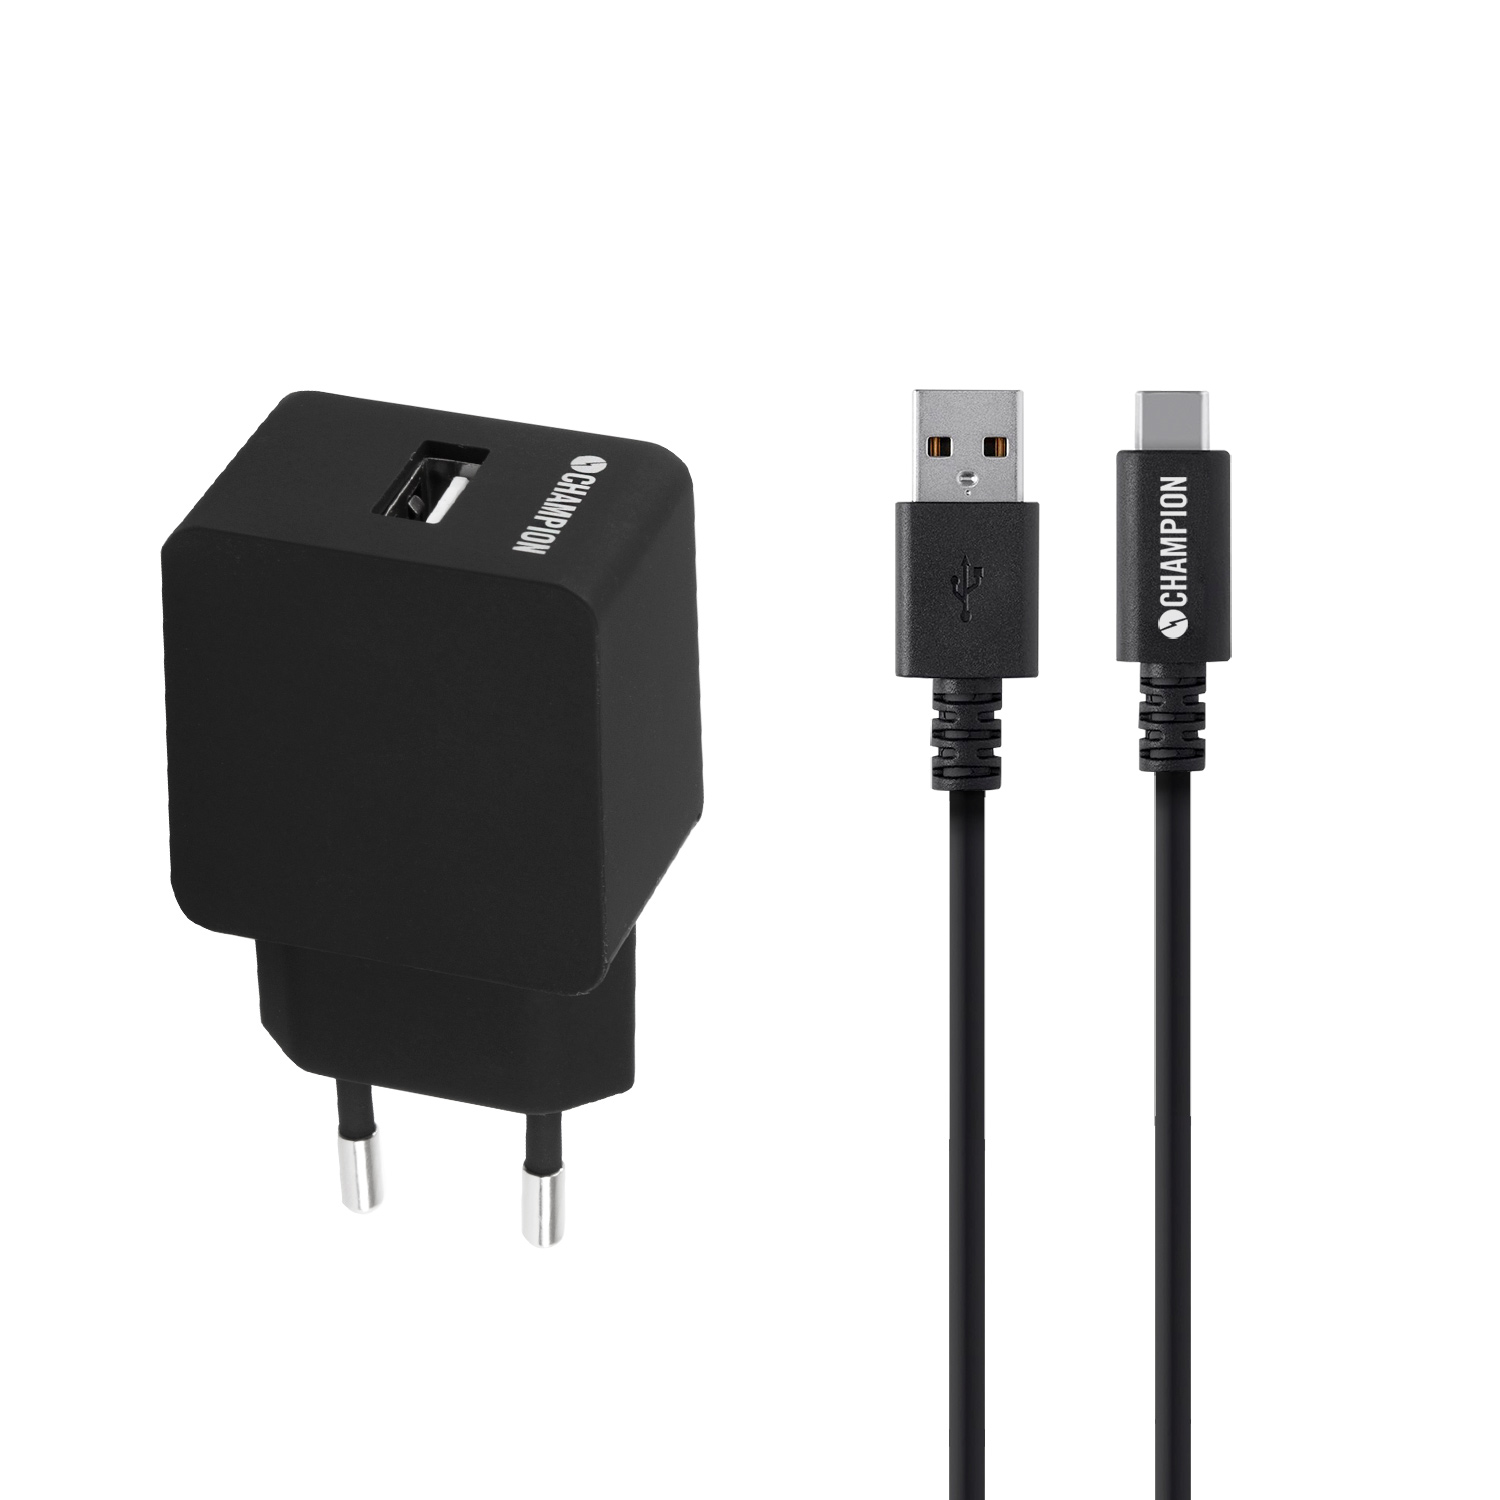 Ladd&Synk Kit USB-C 2.4A Svart